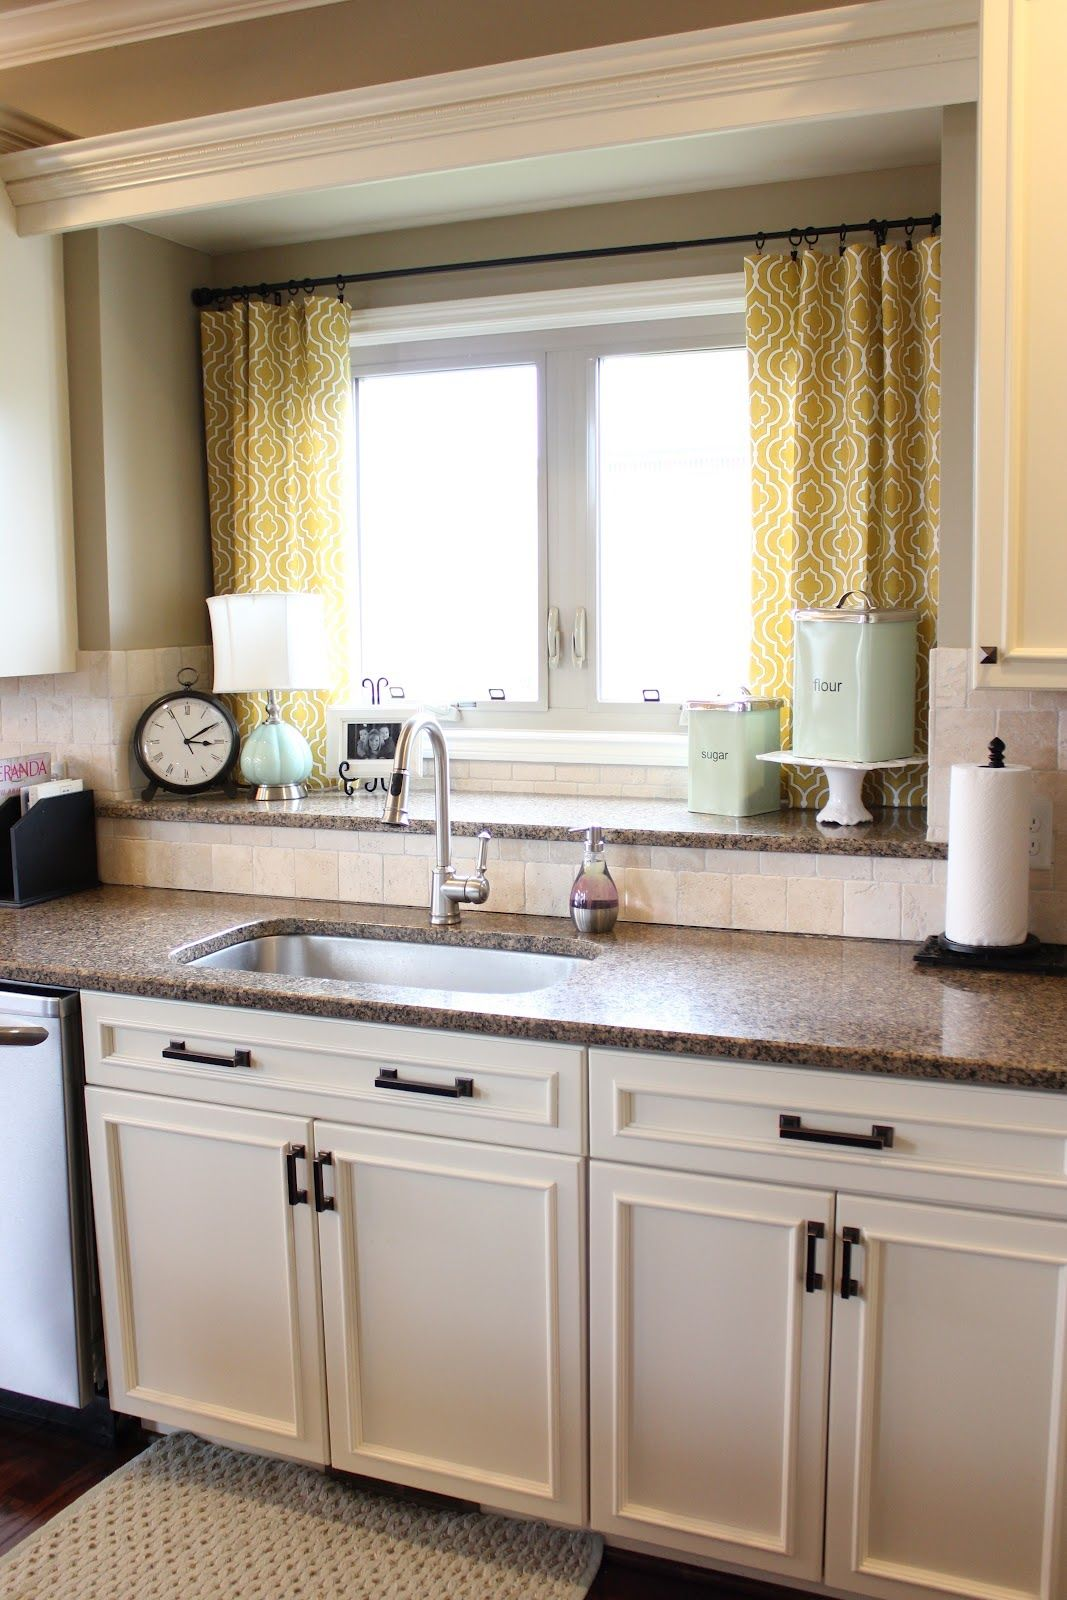 Kitchen Window Treatments Ideas Moen Brushed Nickel Faucet Nifty Treatment Idea Also Love The Double Sill For Storage Decor Over Sink